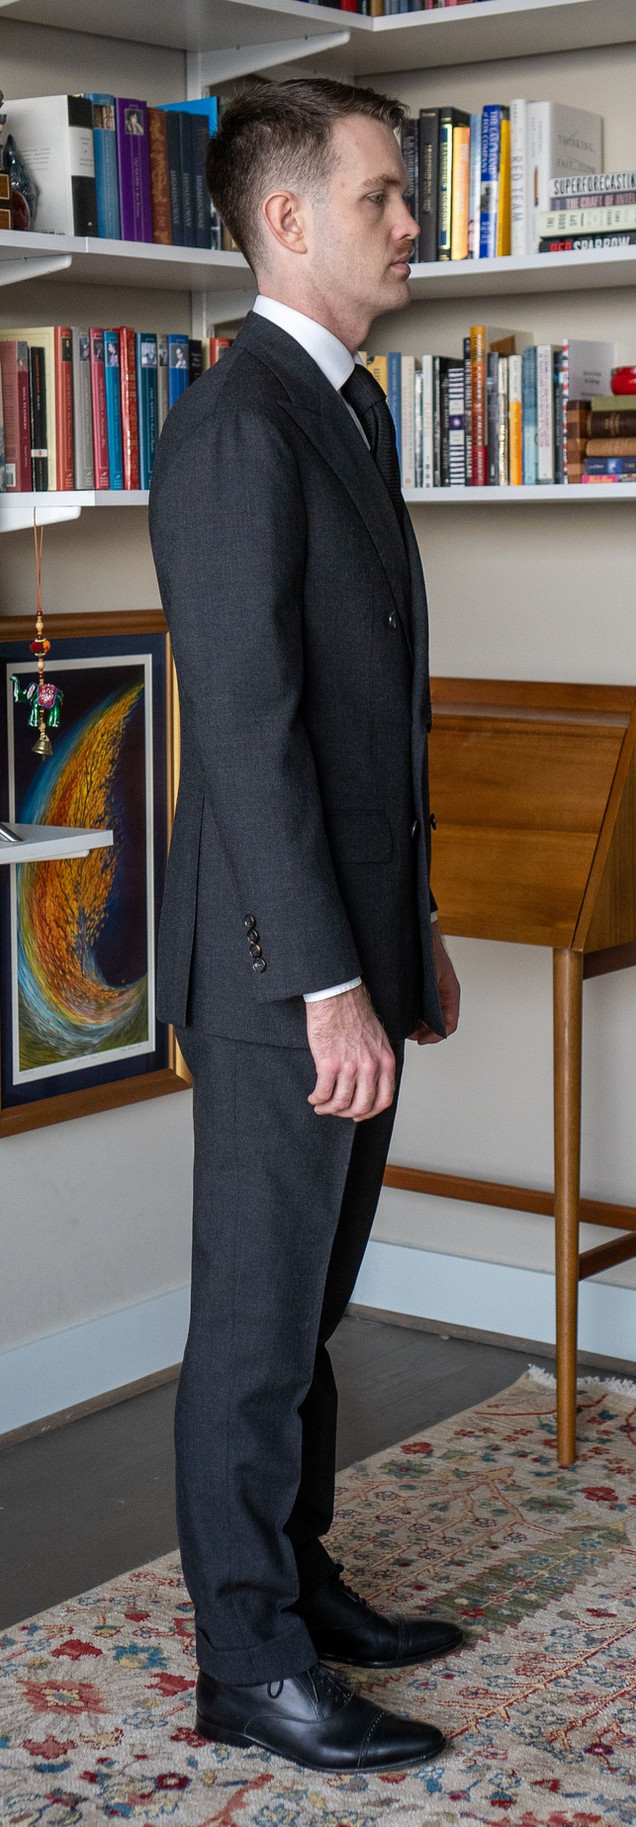 Full-length right side view of Anglo-Italian double-breasted suit